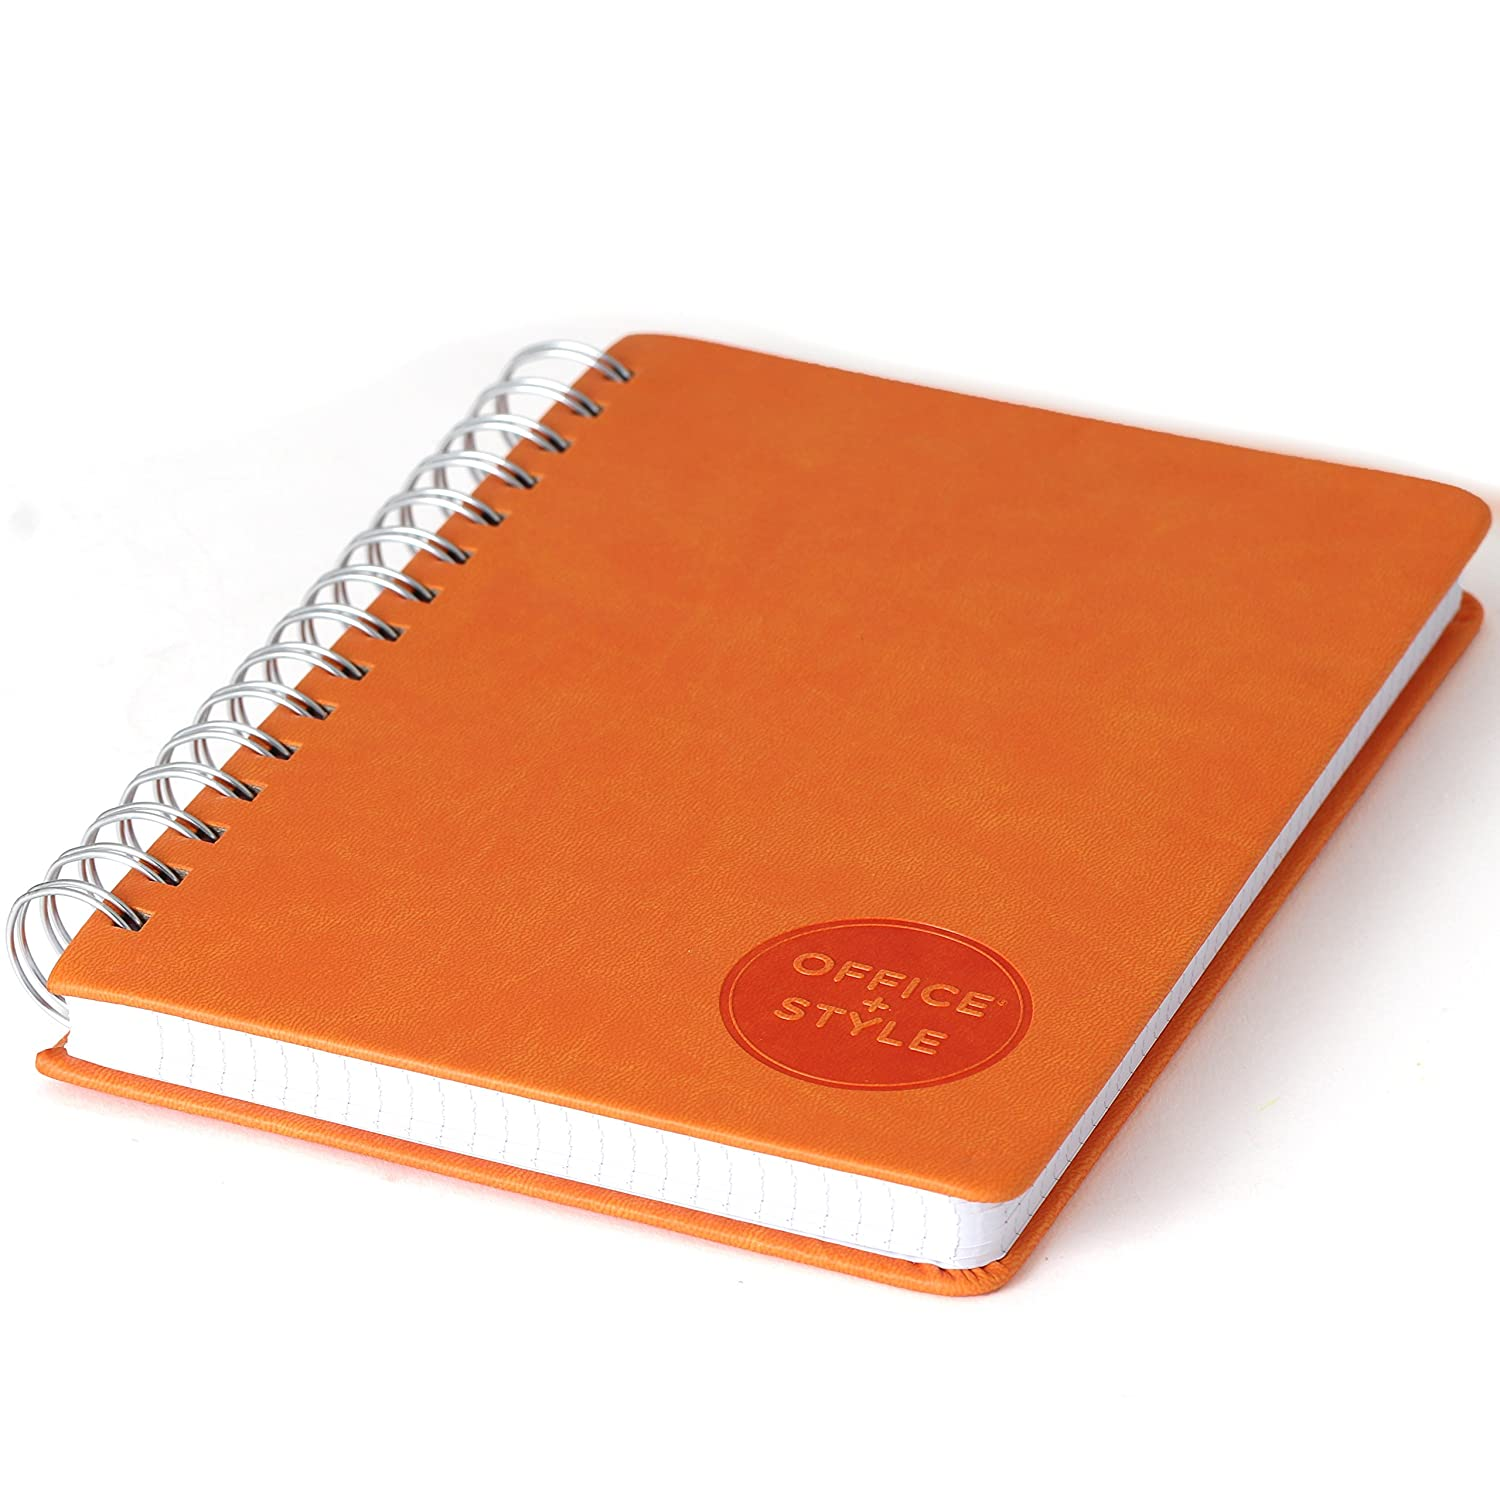 OS3-NBPRPL Purple 96 Sheets Office+Style PU Personal Graph Notebook with Double Spiral Binding